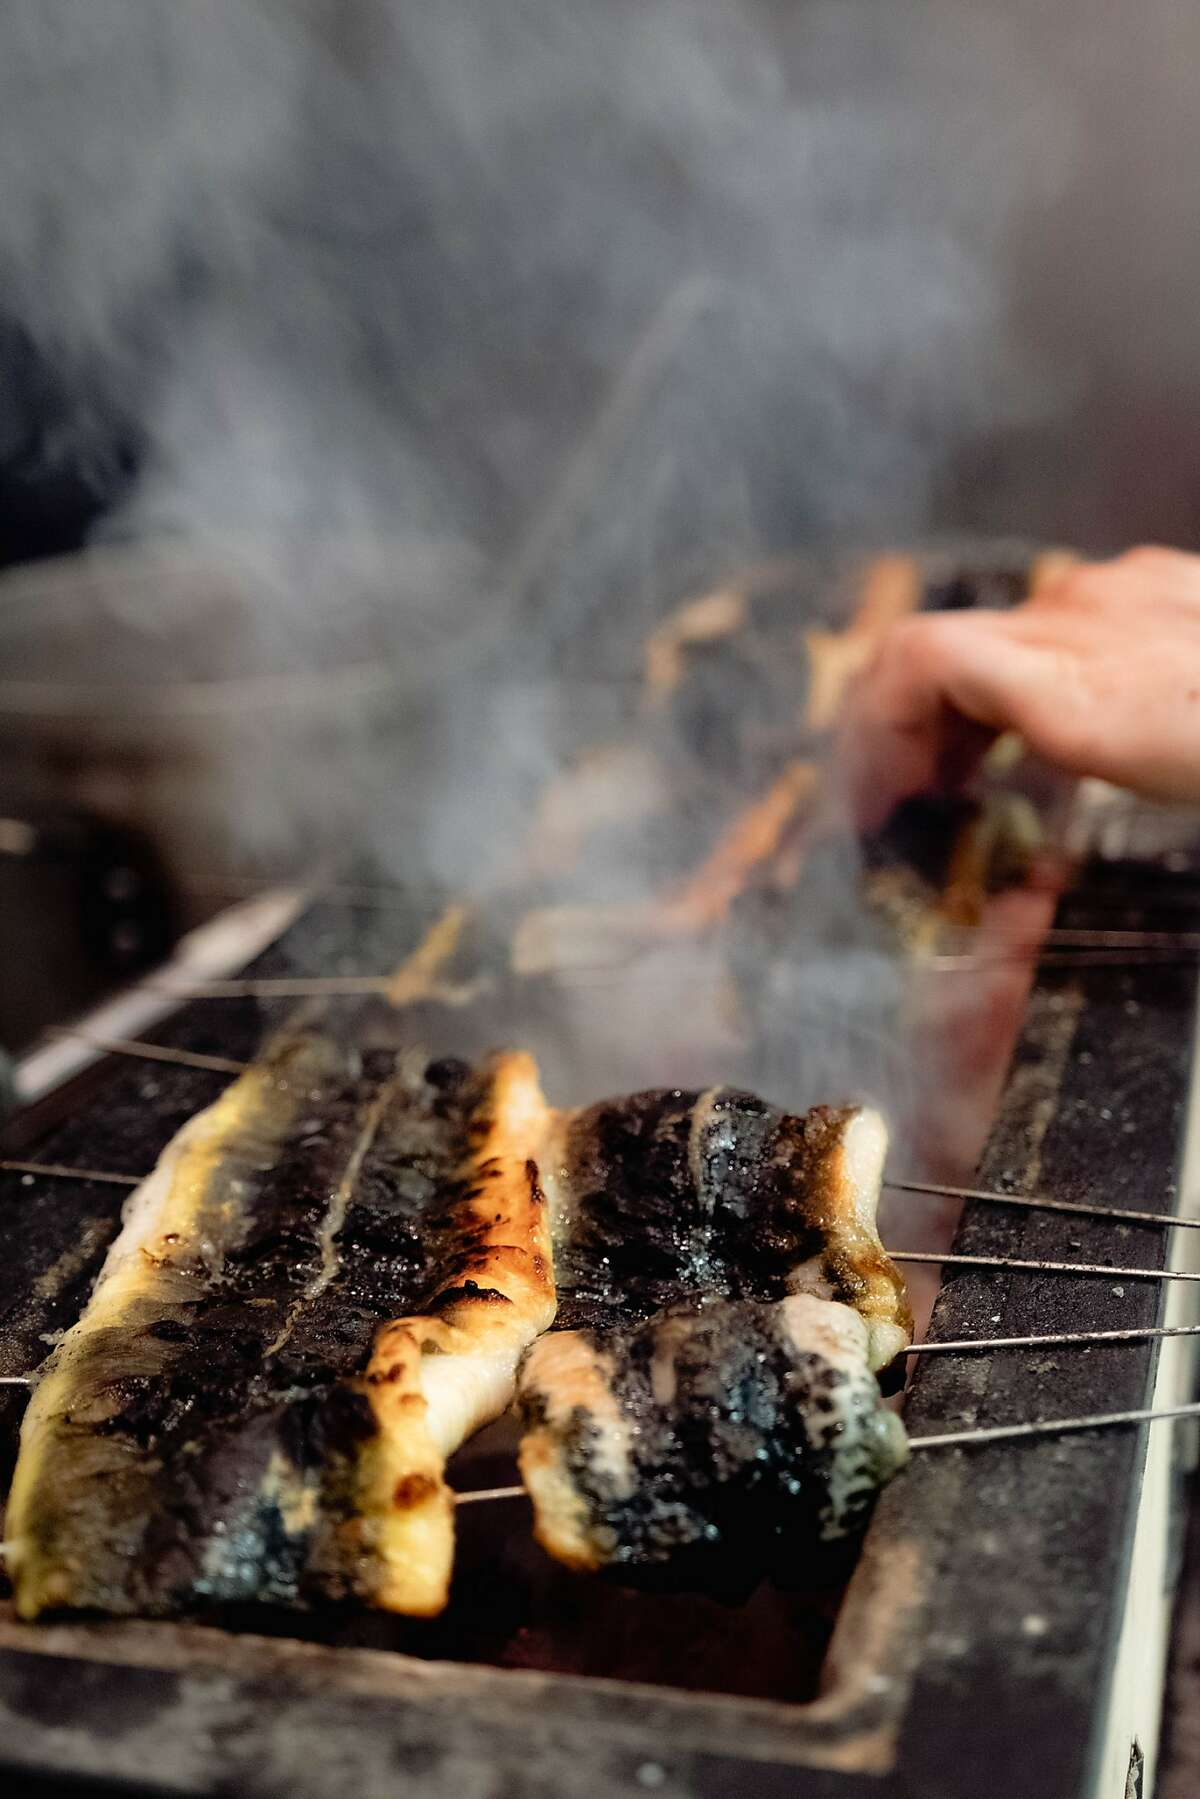 David Yoshimura grills American unagi for final course to go with rice during a Nisei pop-up. He'll open Nisei as a brick-and-mortar fine dining restaurant in the former La Folie space in San Francisco.